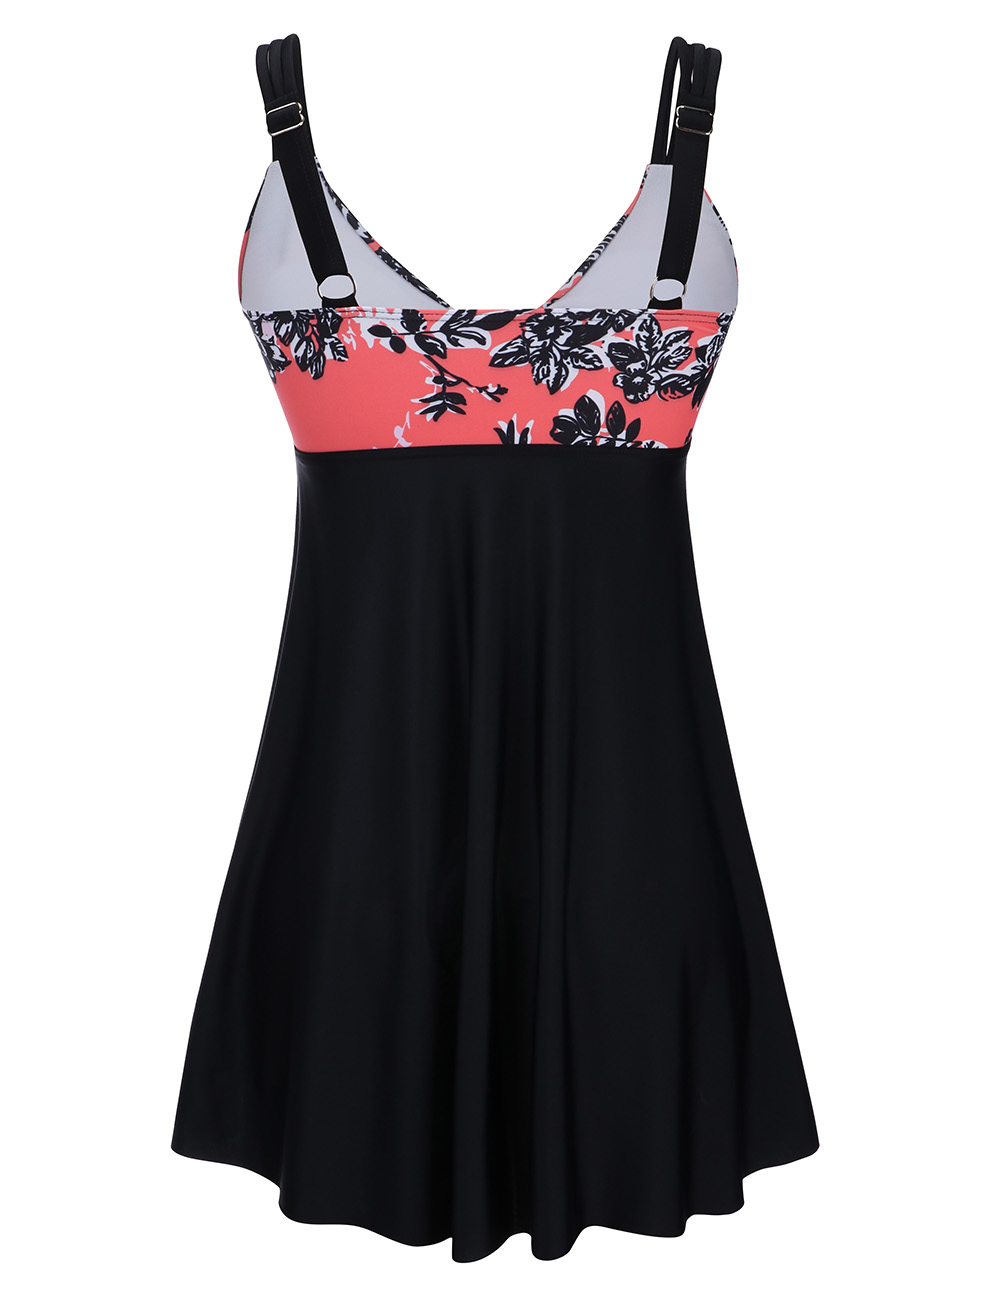 //cdn.affectcloud.com/hexinfashion/upload/imgs/Swimwear/Tankini/F185049-OG2/F185049-OG2-201911055dc1147fae3b1.jpg